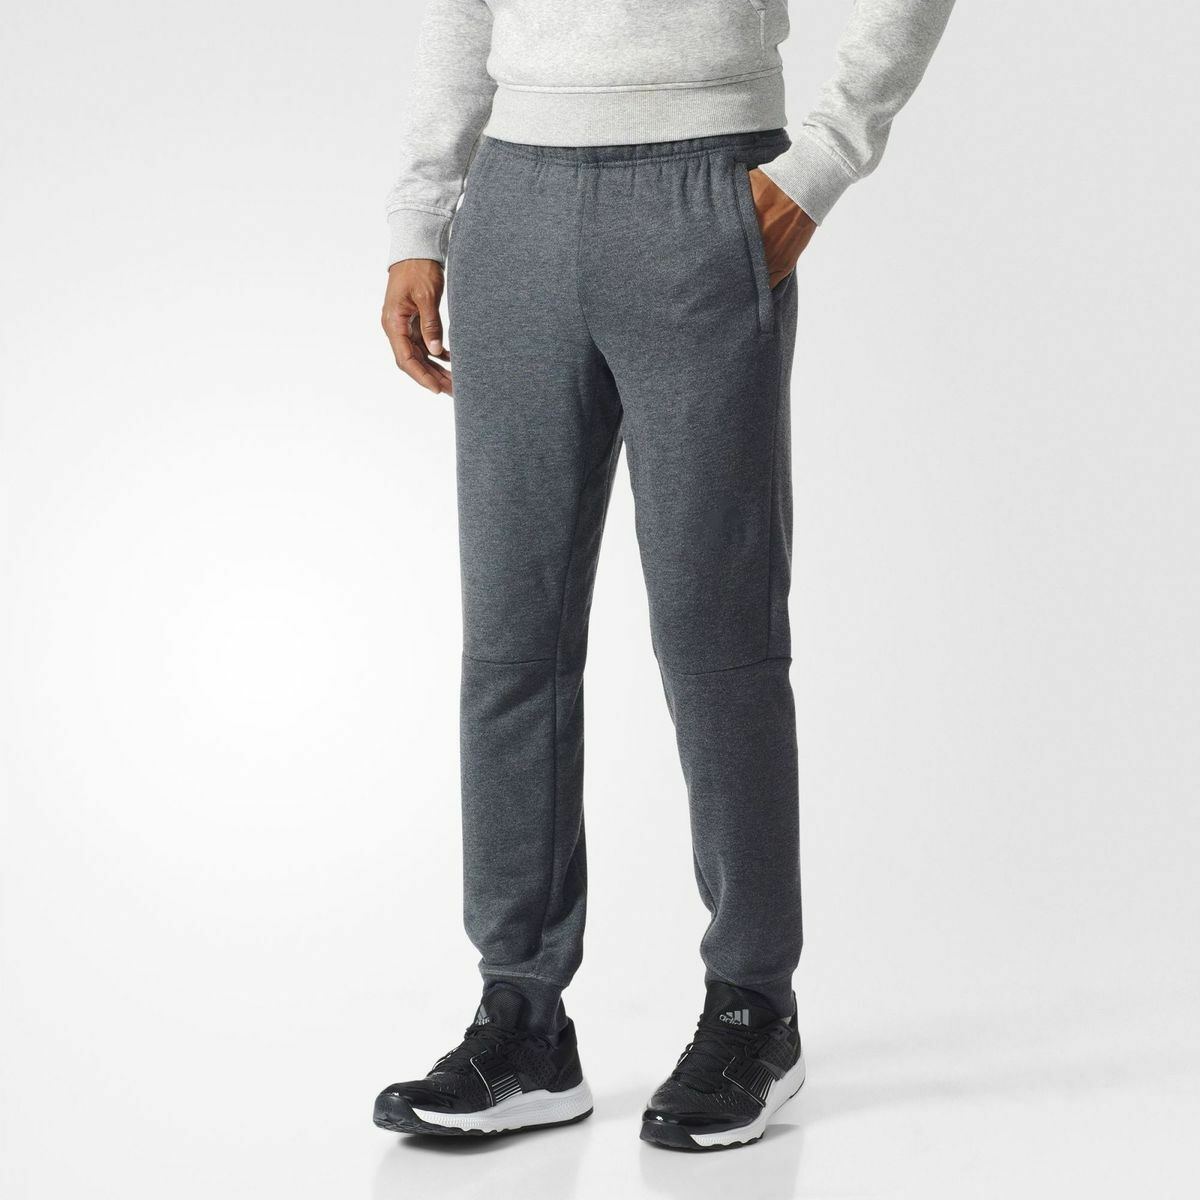 ADIDAS WORKOUT  PANT TROUSERS ORIGINAL CLIMALITE GREY BK0945 (PVP IN STORE 59E)  just buy it